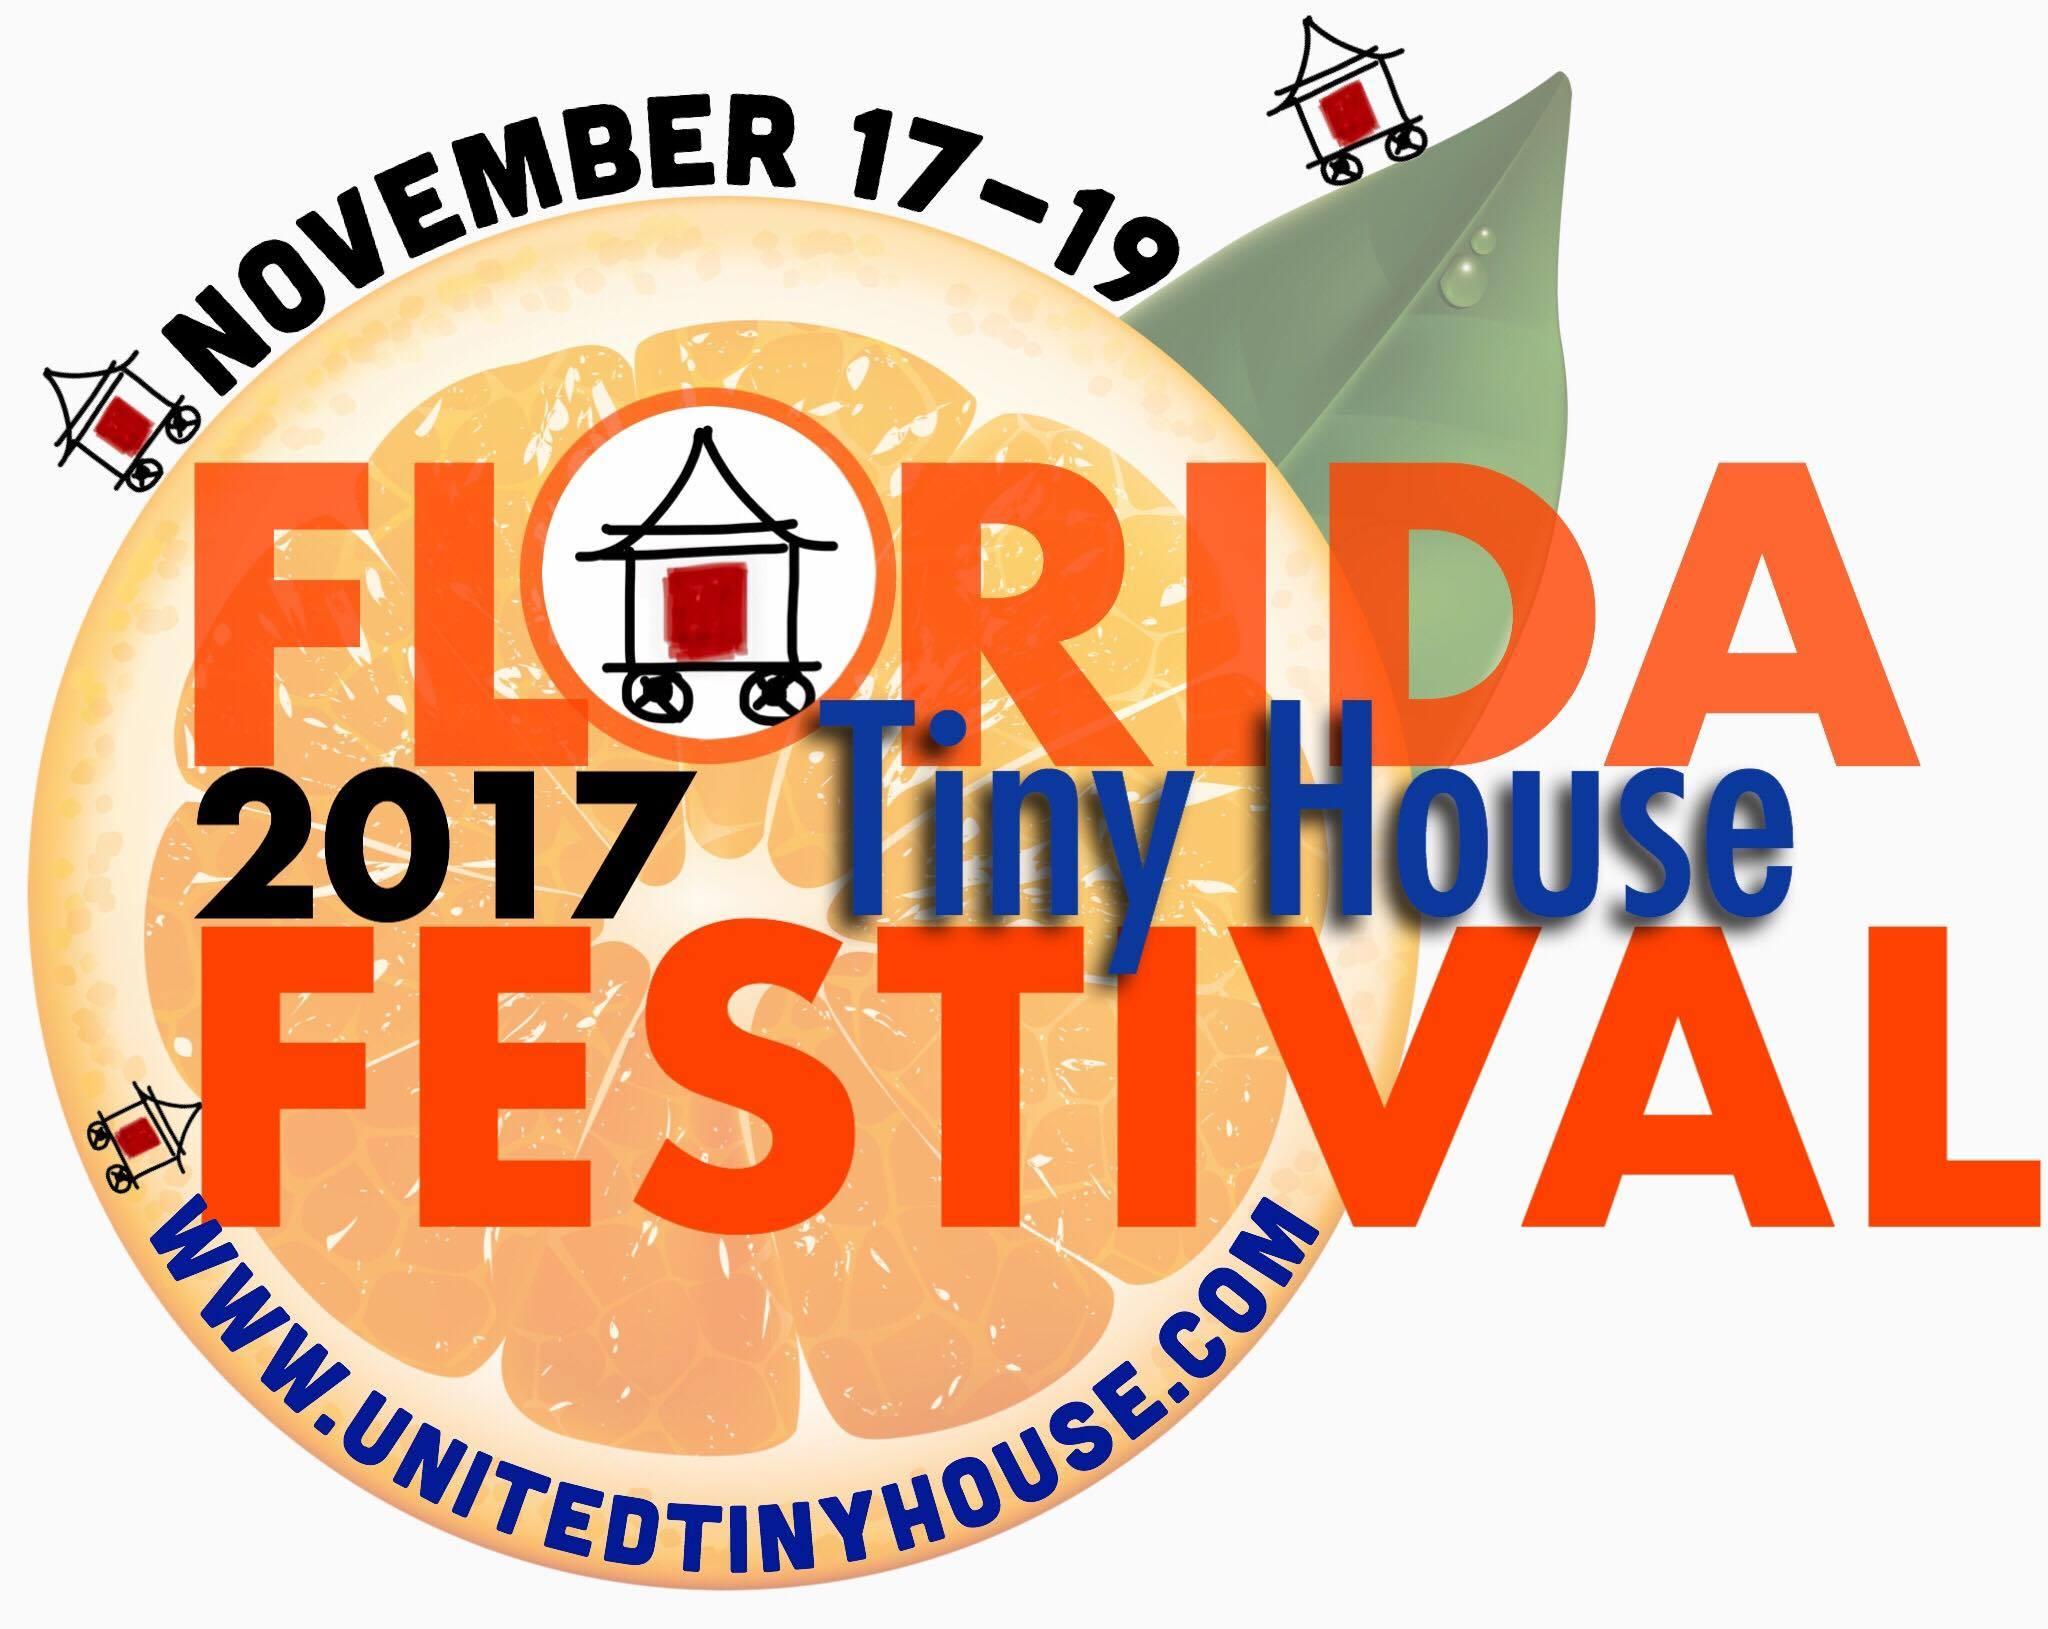 Major festivals and events in st augustine st for St augustine arts and crafts festival 2017